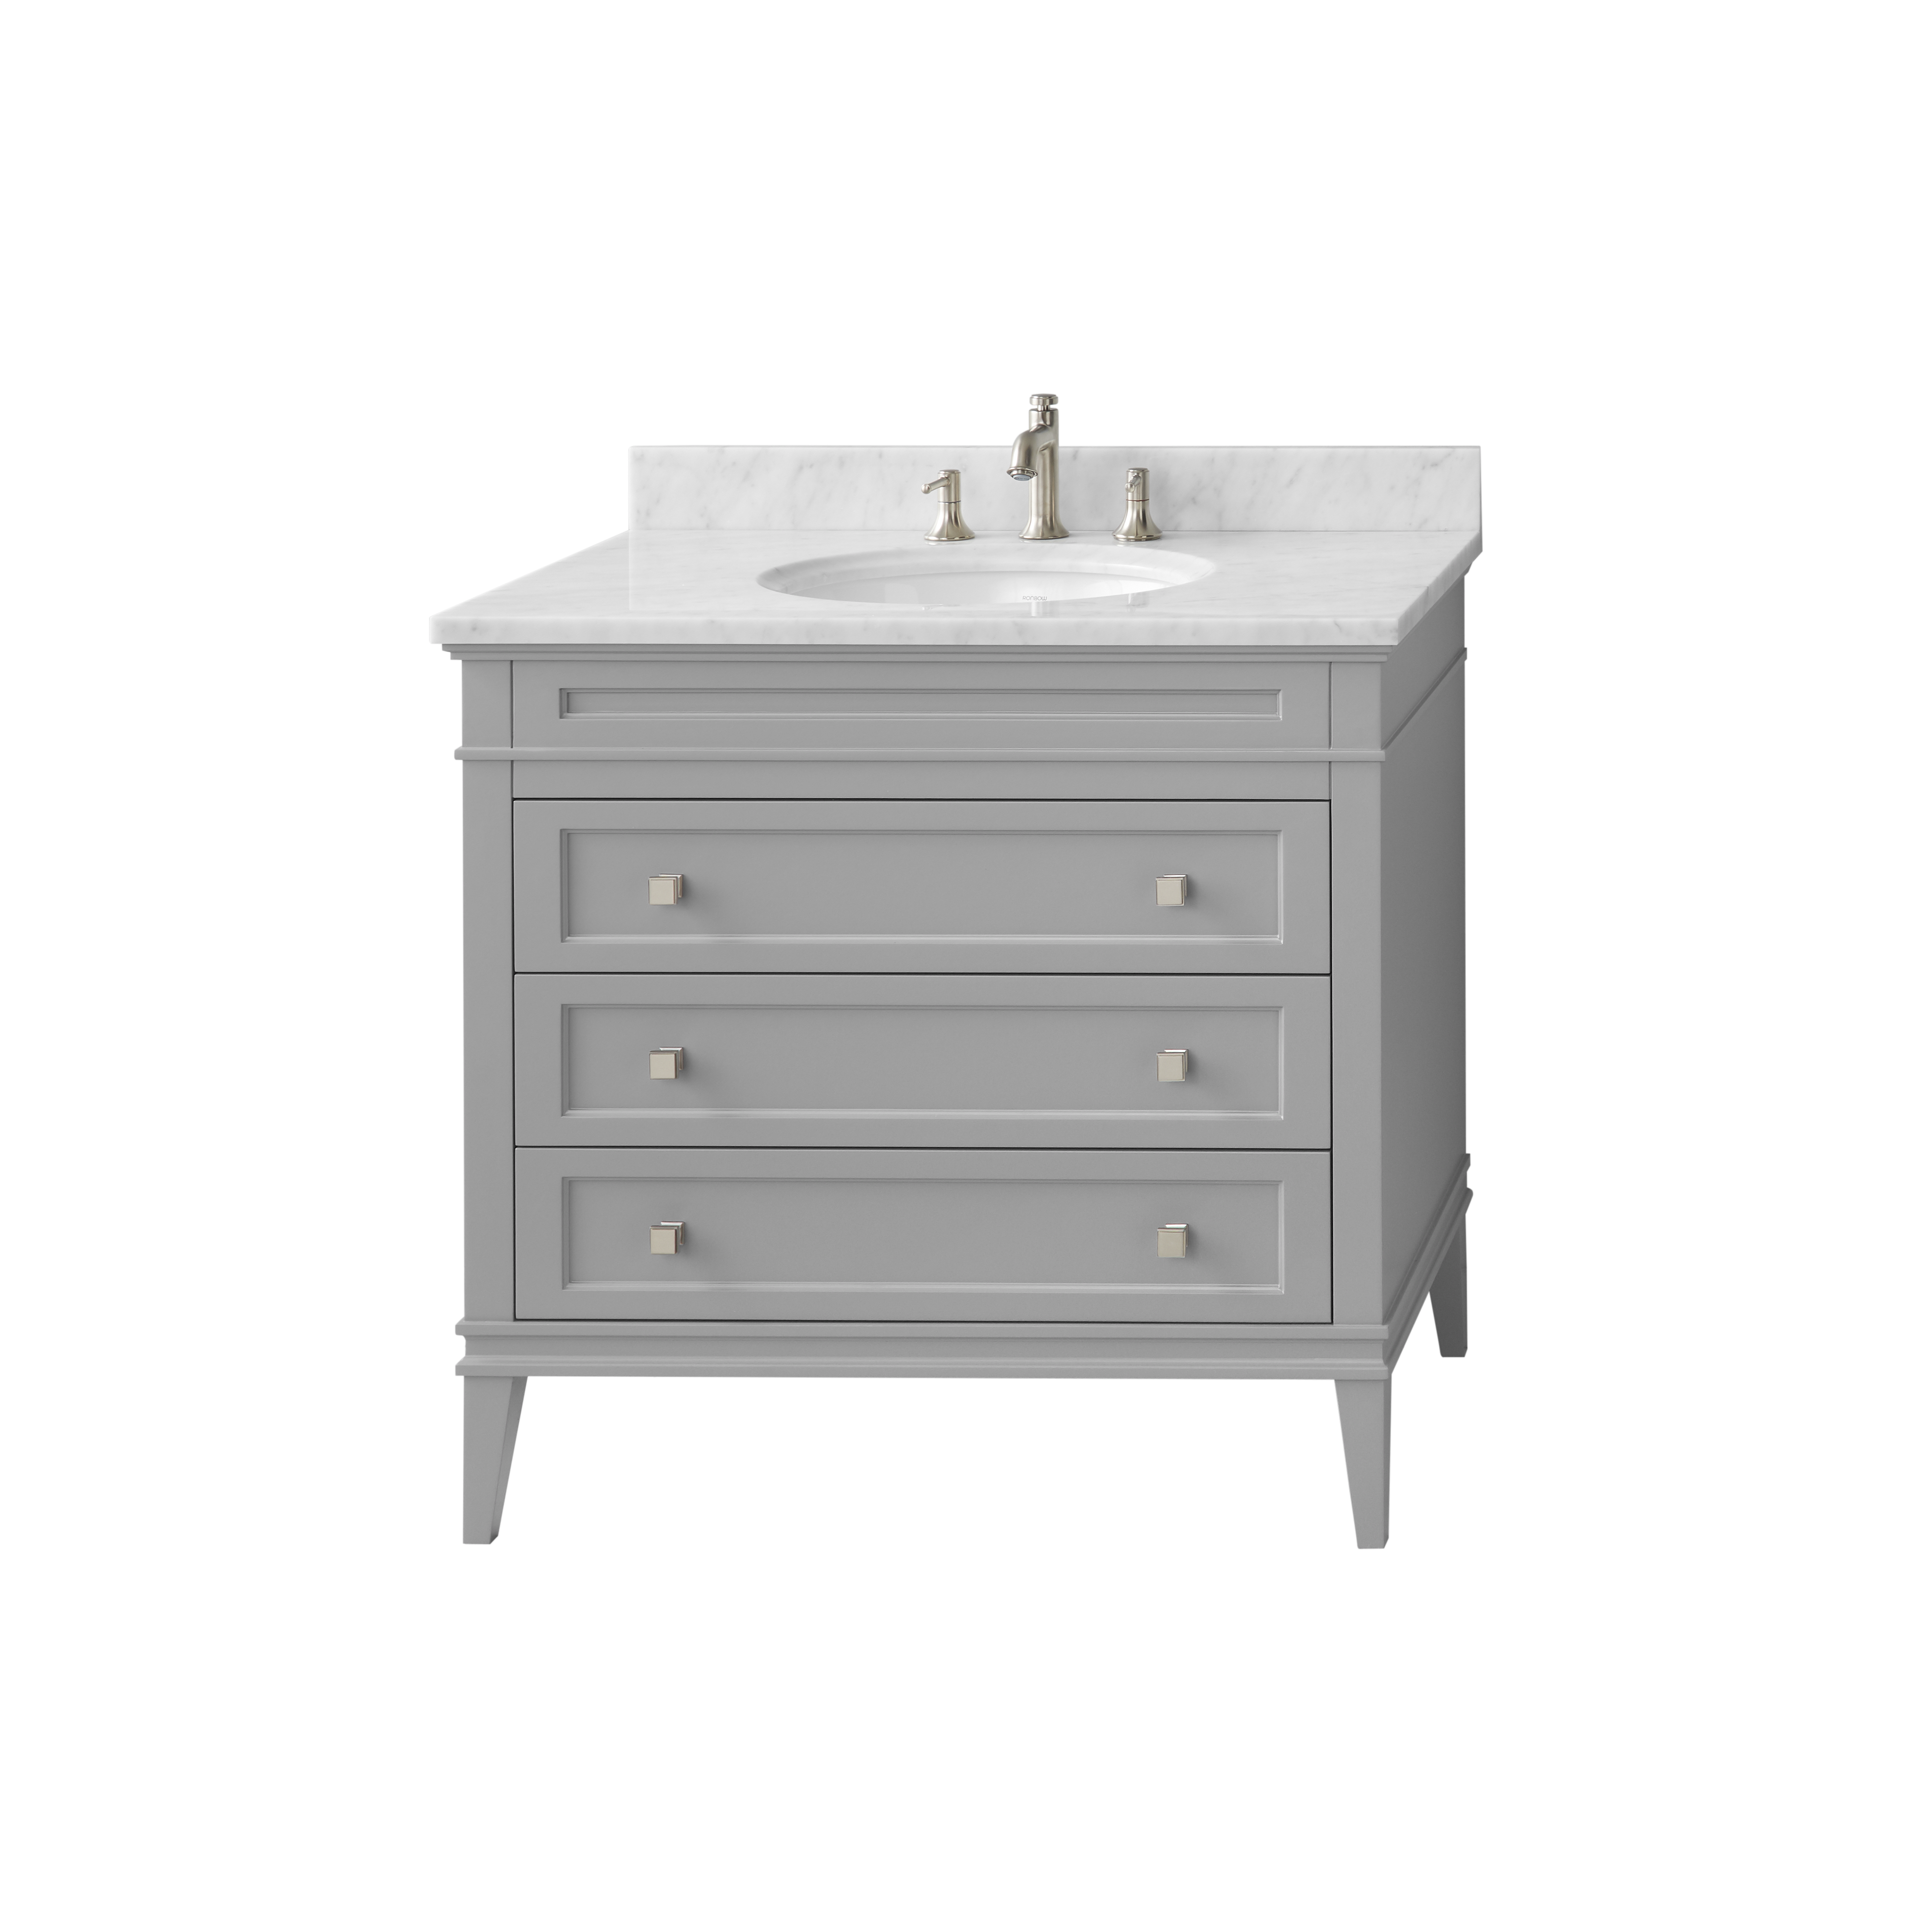 sinks mounted vanity double small cabinets hung countertops at countertop inside bathroom magnificent sink and wall wooden